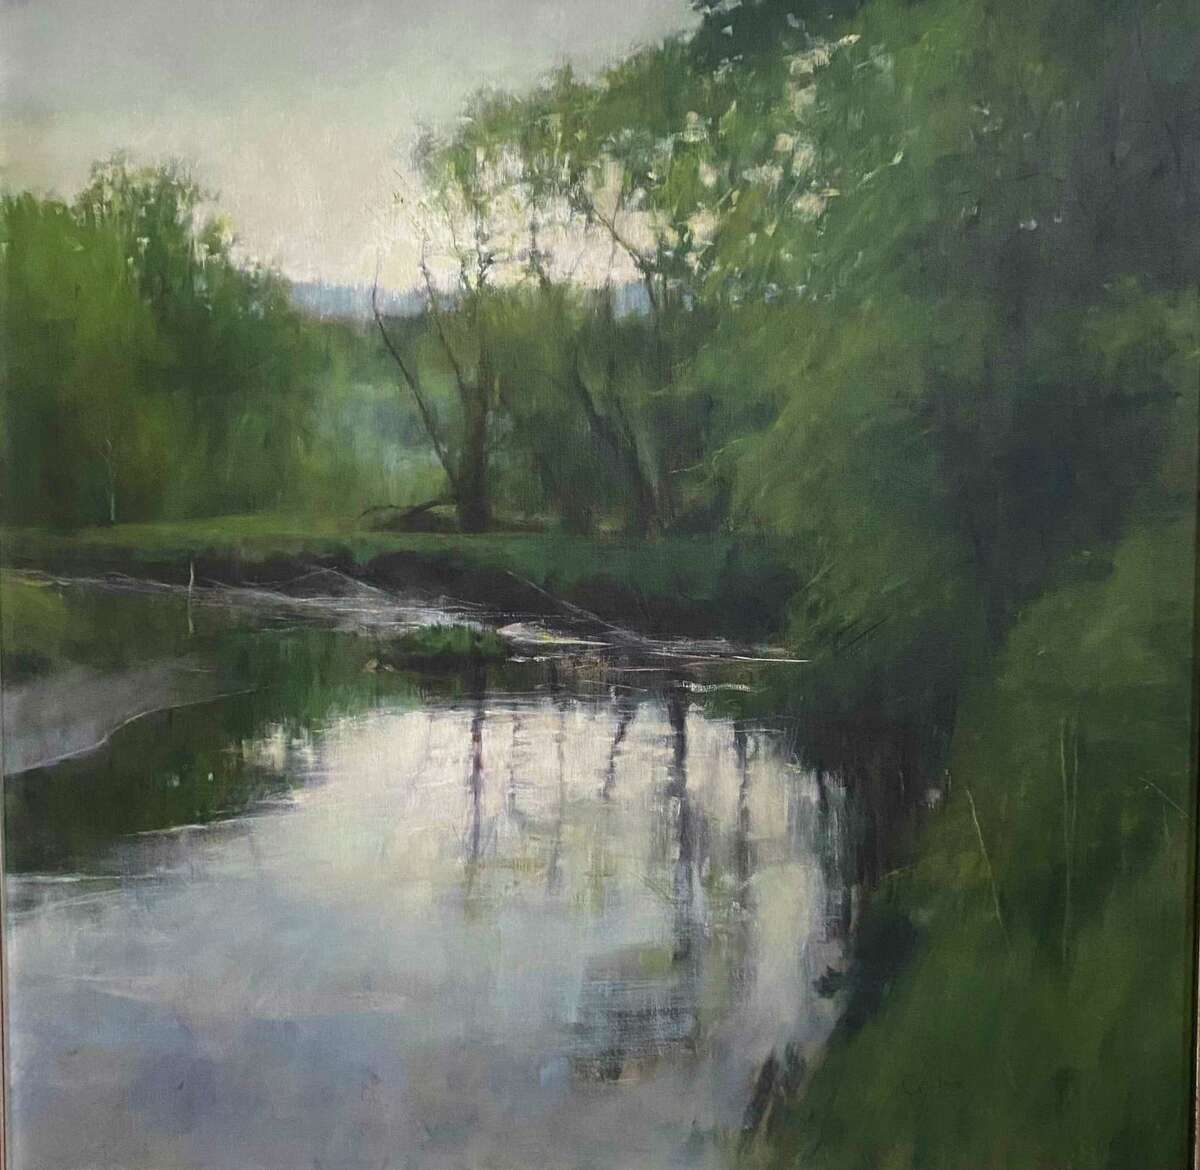 The Cornwall Library is showing an exhibit of paintings by Cornwall artist Curt Hanson